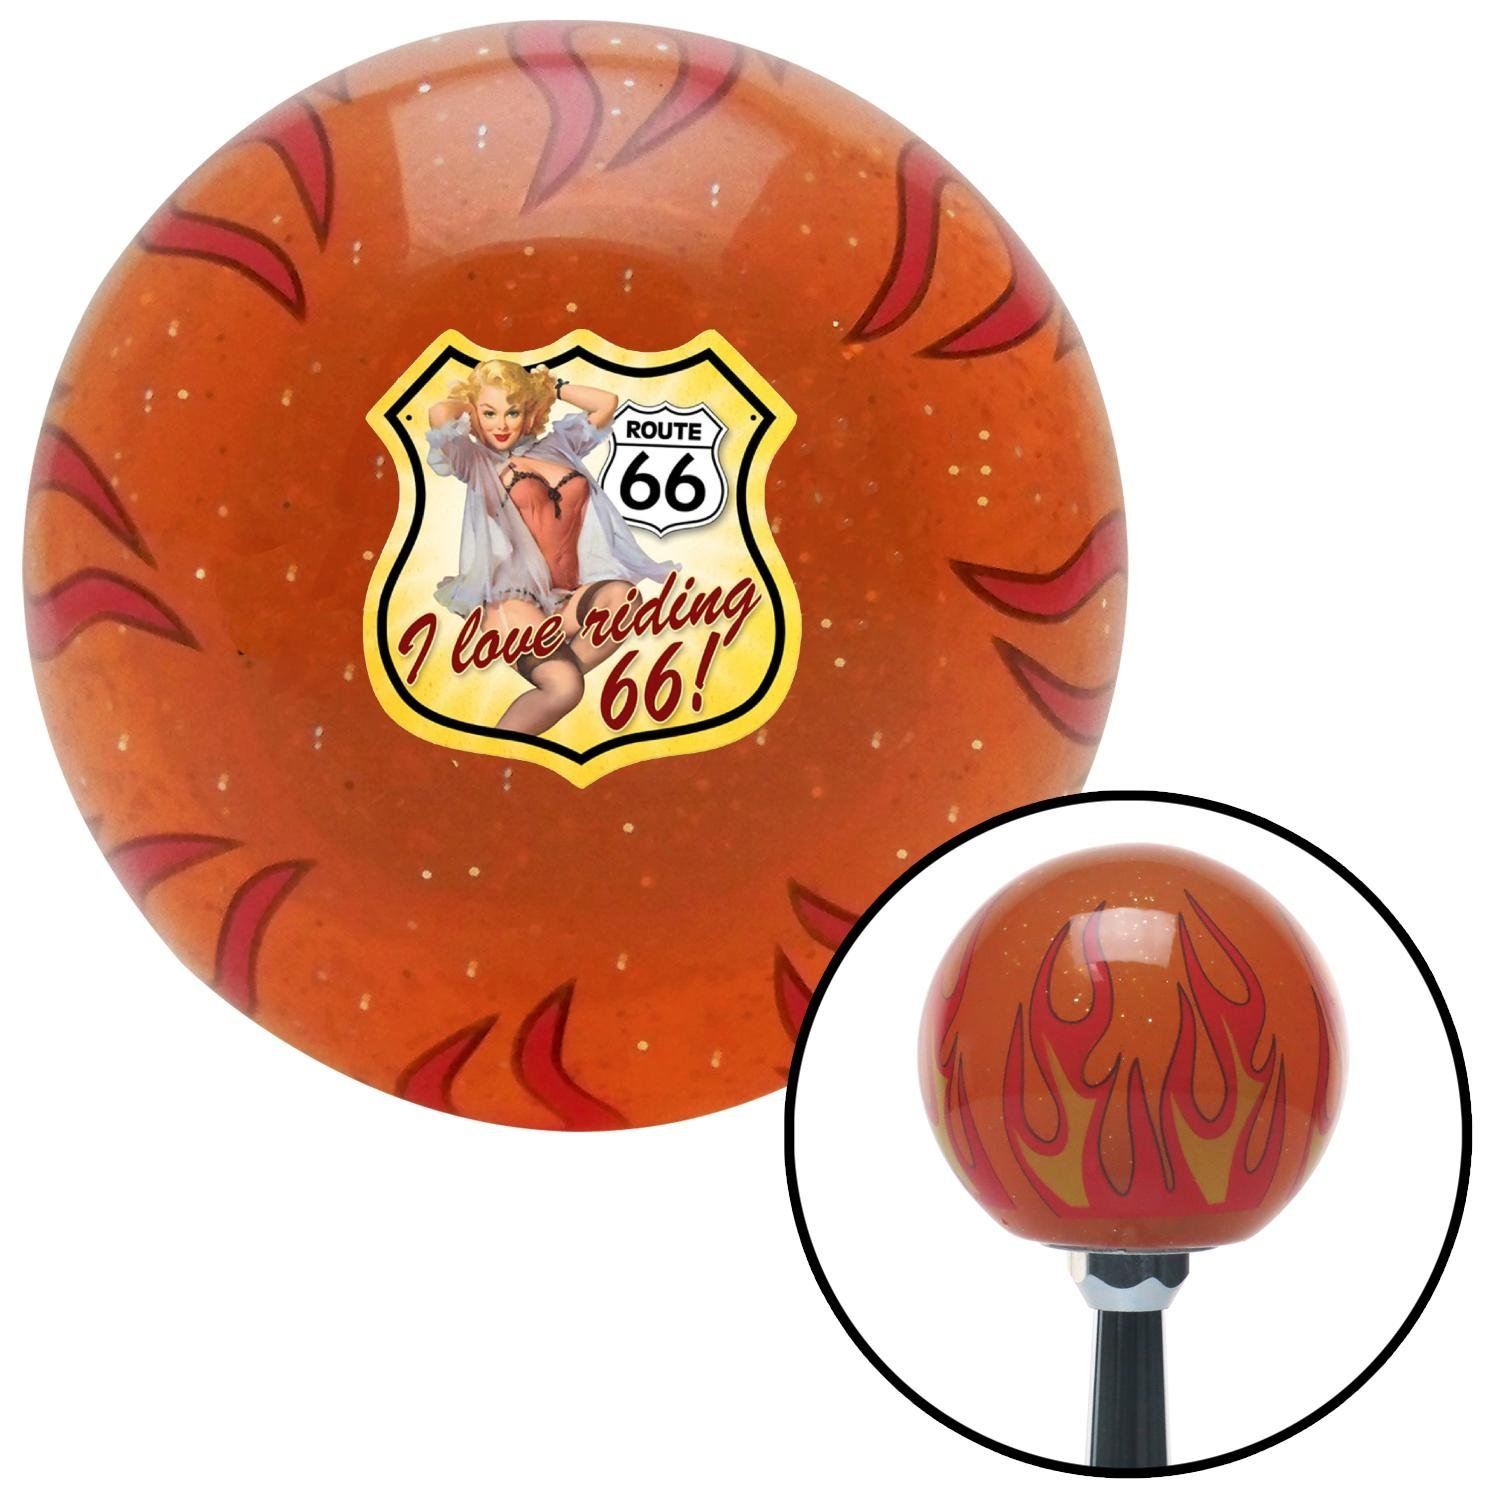 American Shifter 259070 Orange Flame Metal Flake Shift Knob with M16 x 1.5 Insert I Love Riding 66!